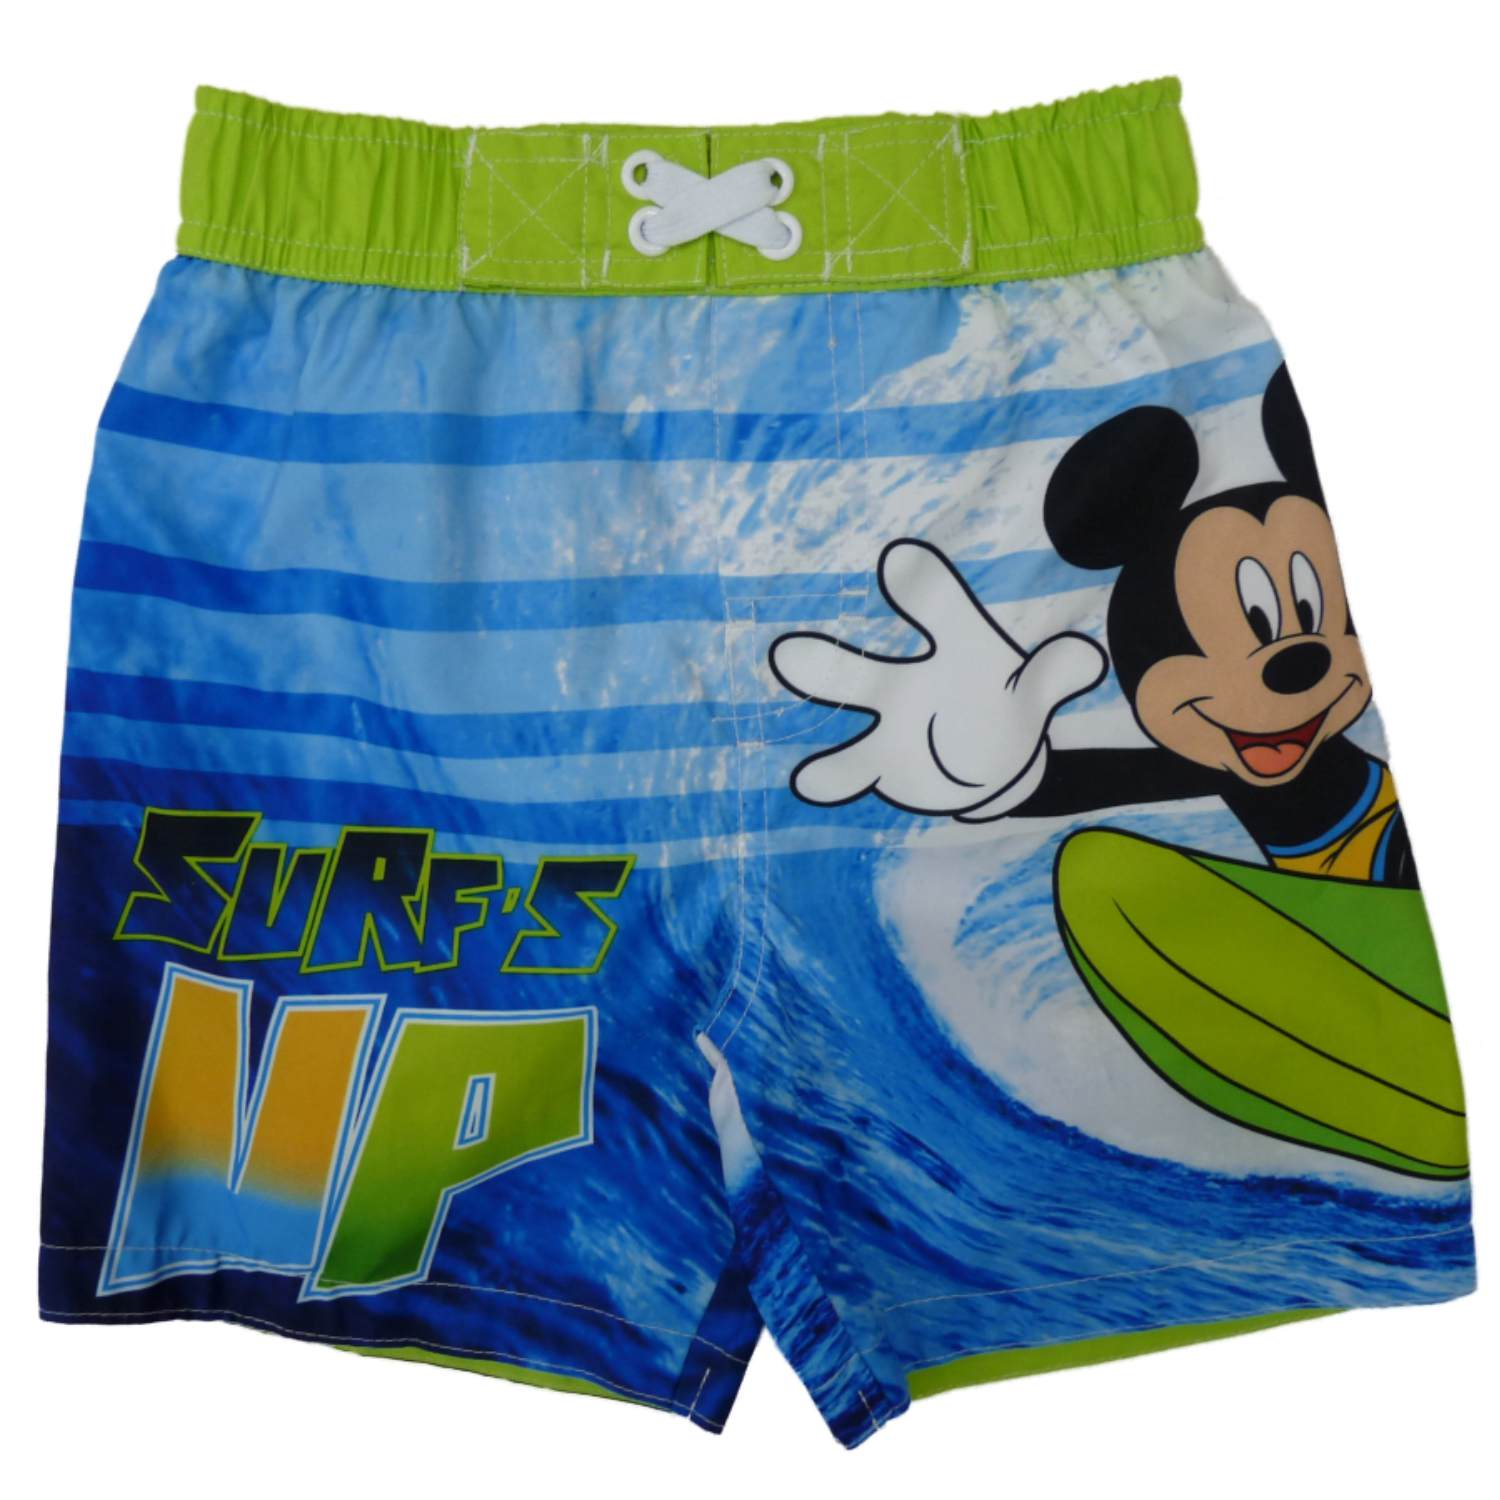 Disney Infant Boys Blue Mickey Mouse Swim Trunks Surf's Up Board Shorts